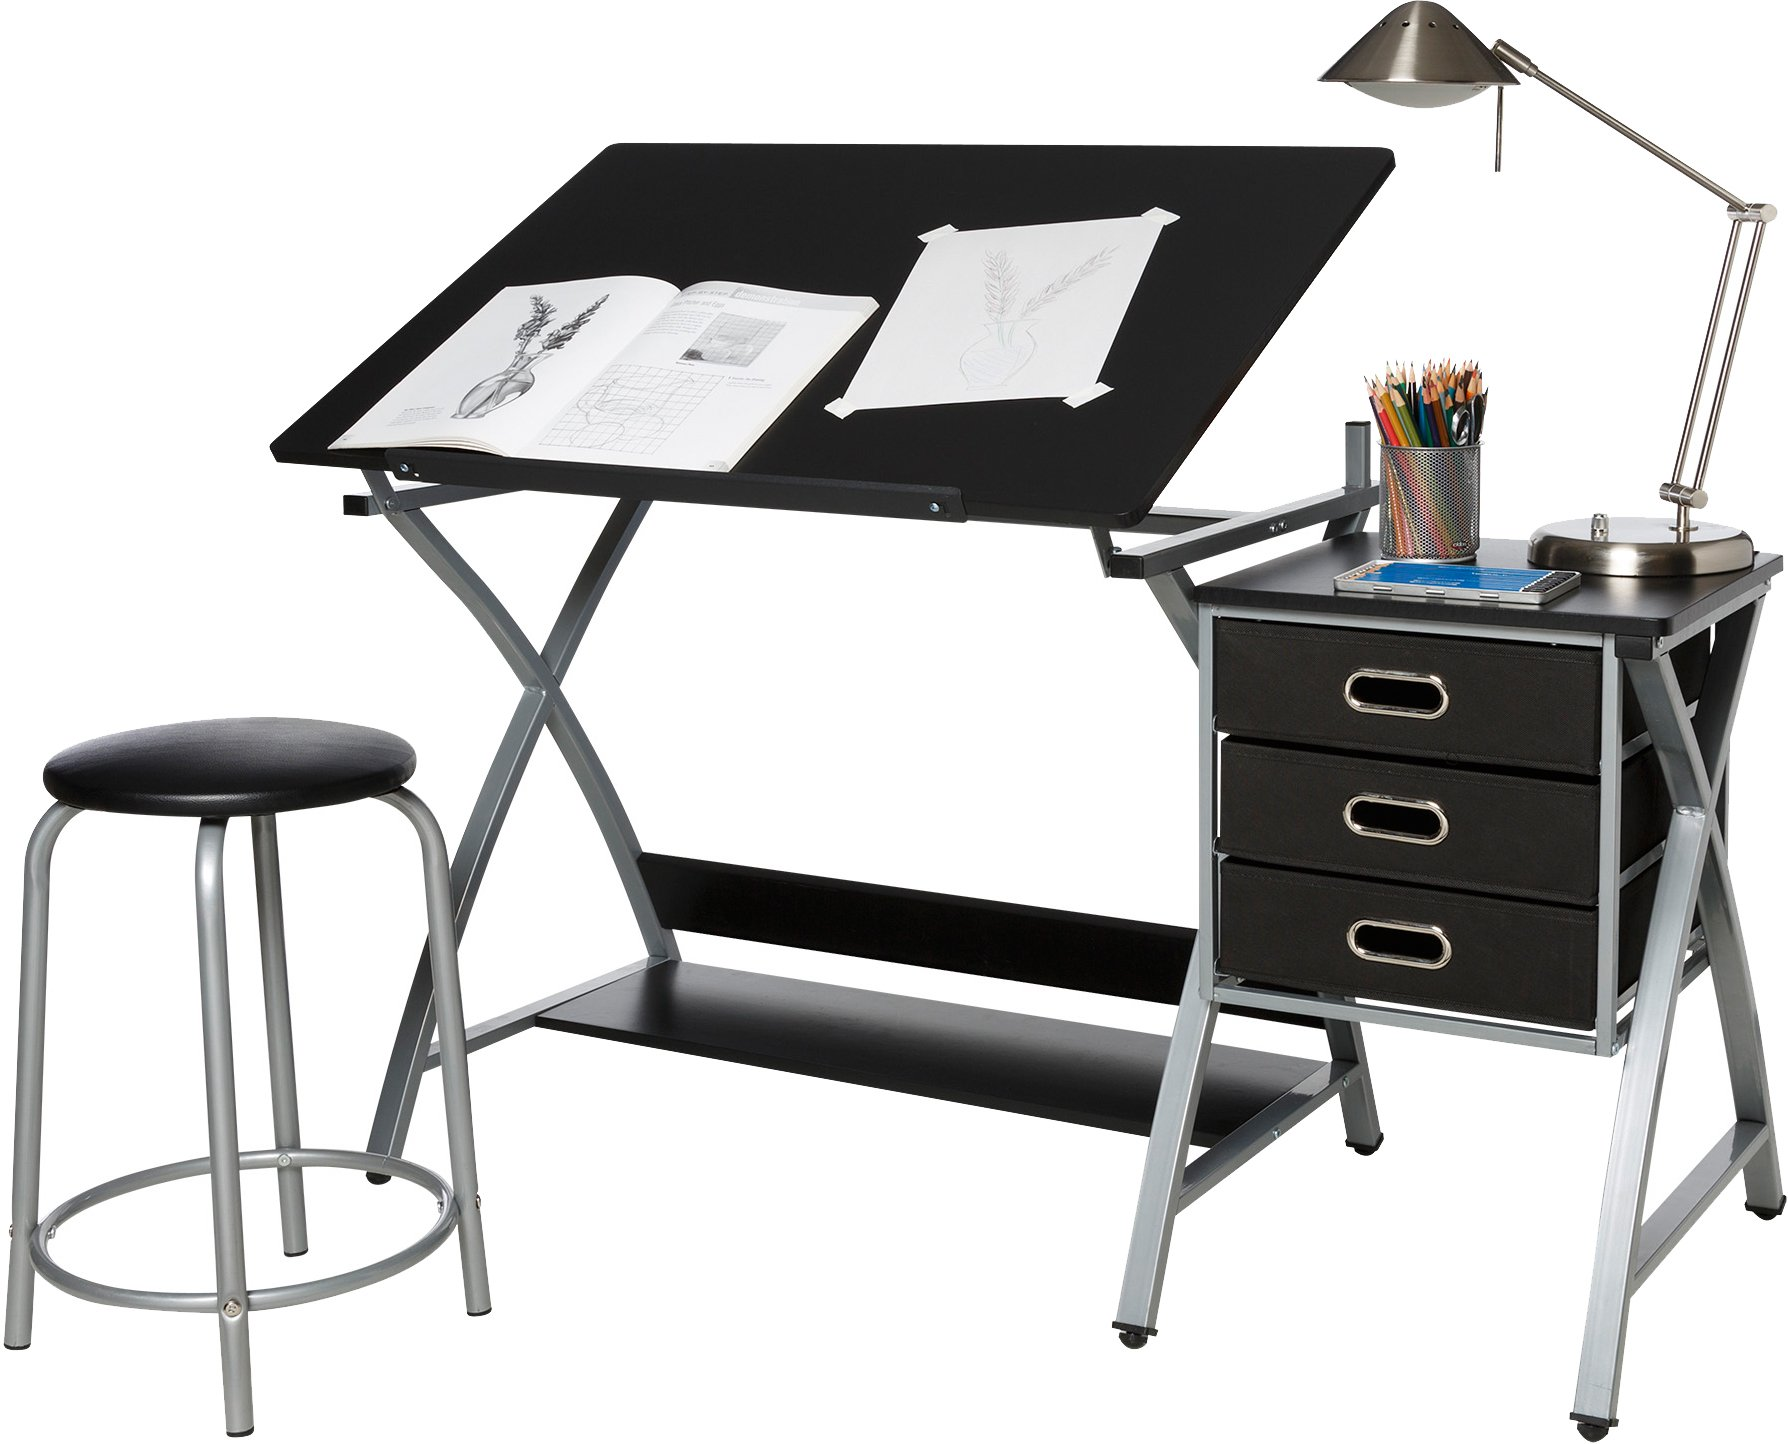 OneSpace 50-CS03 Craft Station, Black and Silver by OneSpace